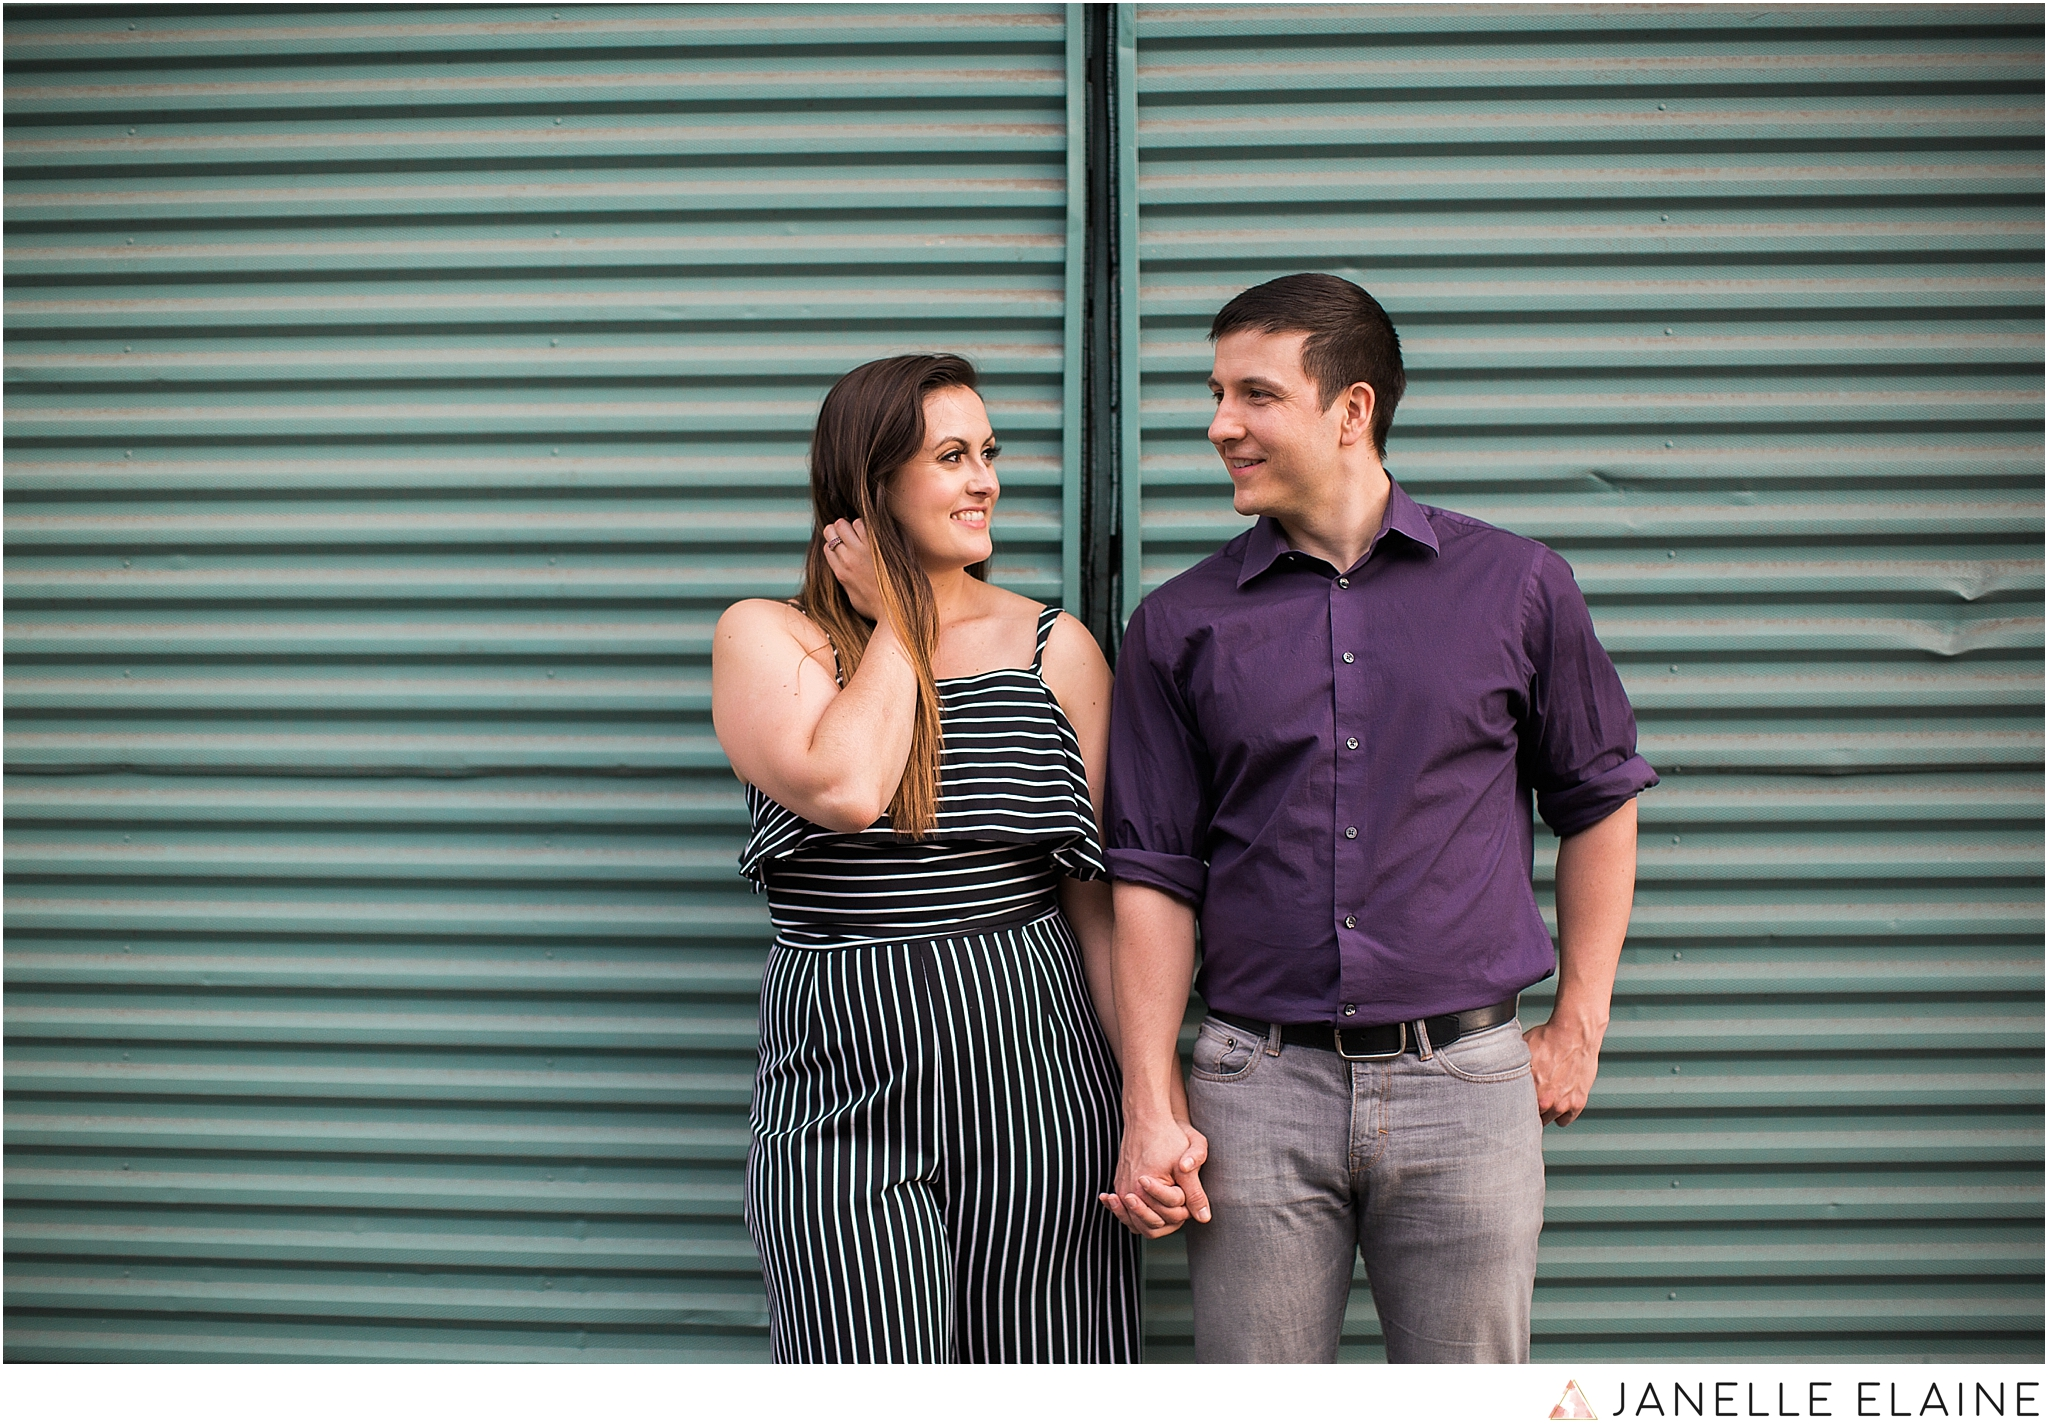 karen ethan-georgetown engagement photos-seattle-janelle elaine photography-196.jpg